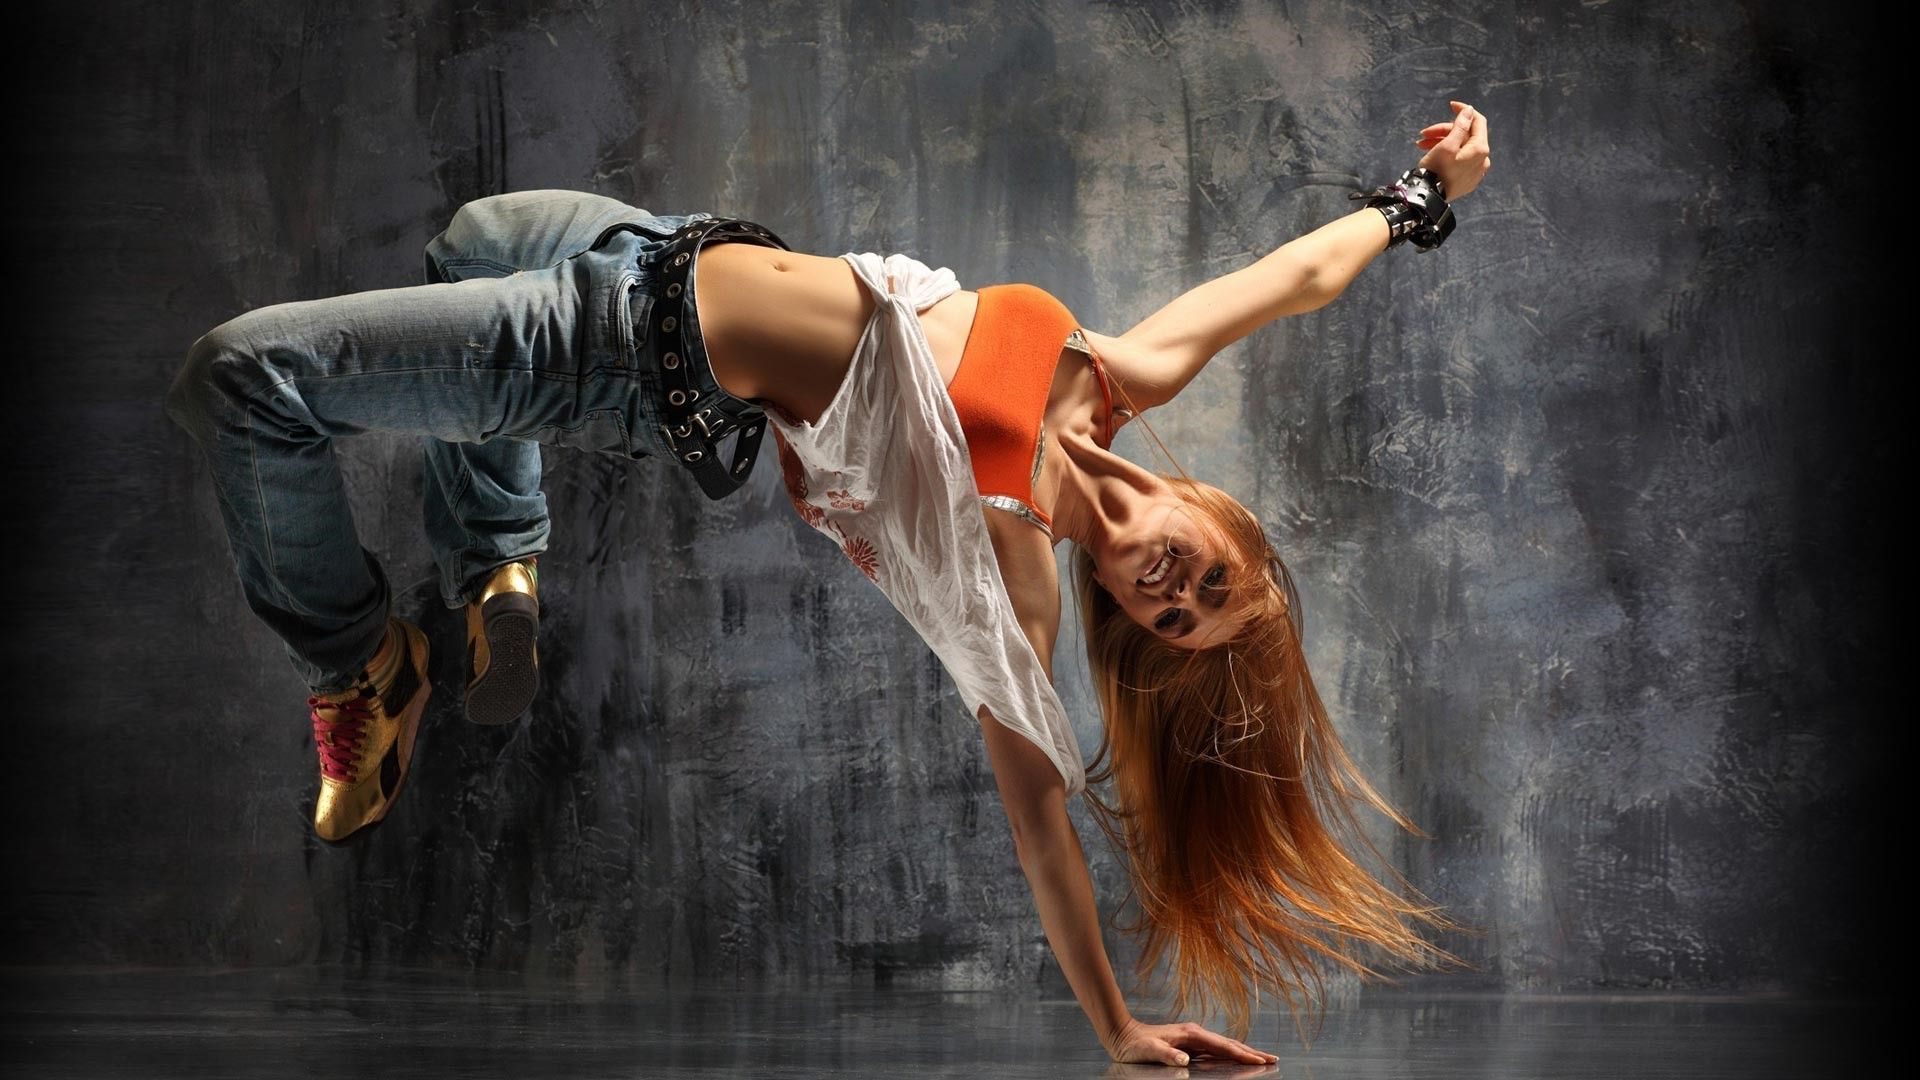 Super Sexy Dancing By Girl Wallpaper Hd Wallpapers